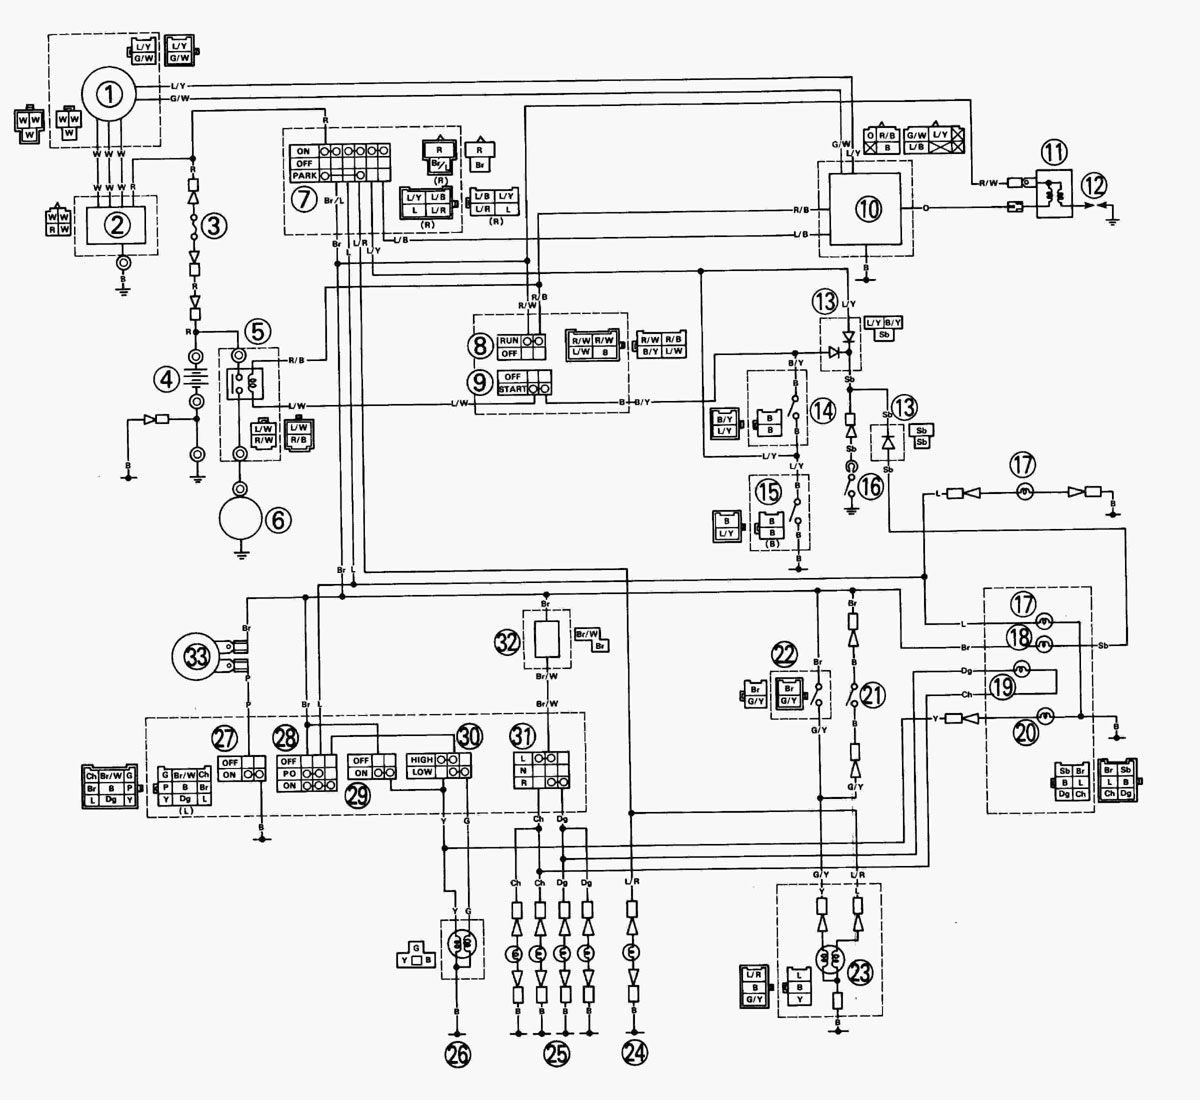 Diagram 2009 Yamaha Nytro Wiring Diagram Full Version Hd Quality Wiring Diagram Diagrambacad Noerder It